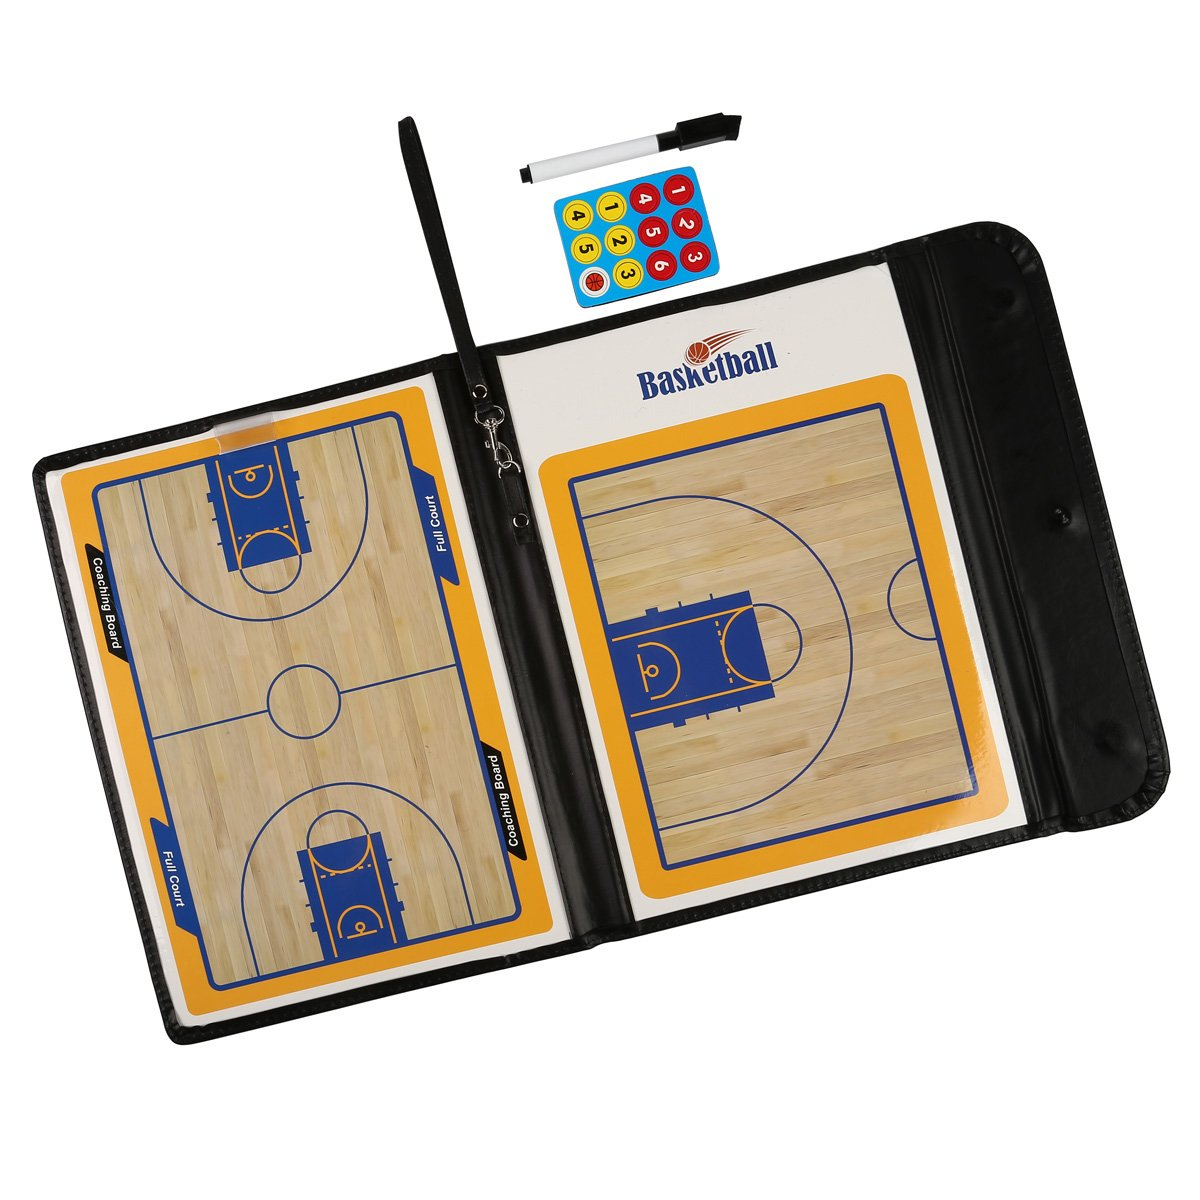 Fiturbo Folding Basketball Coach Board Plate Book Set With Pen Dry Erase Teaching Clip Coaching Clipboard